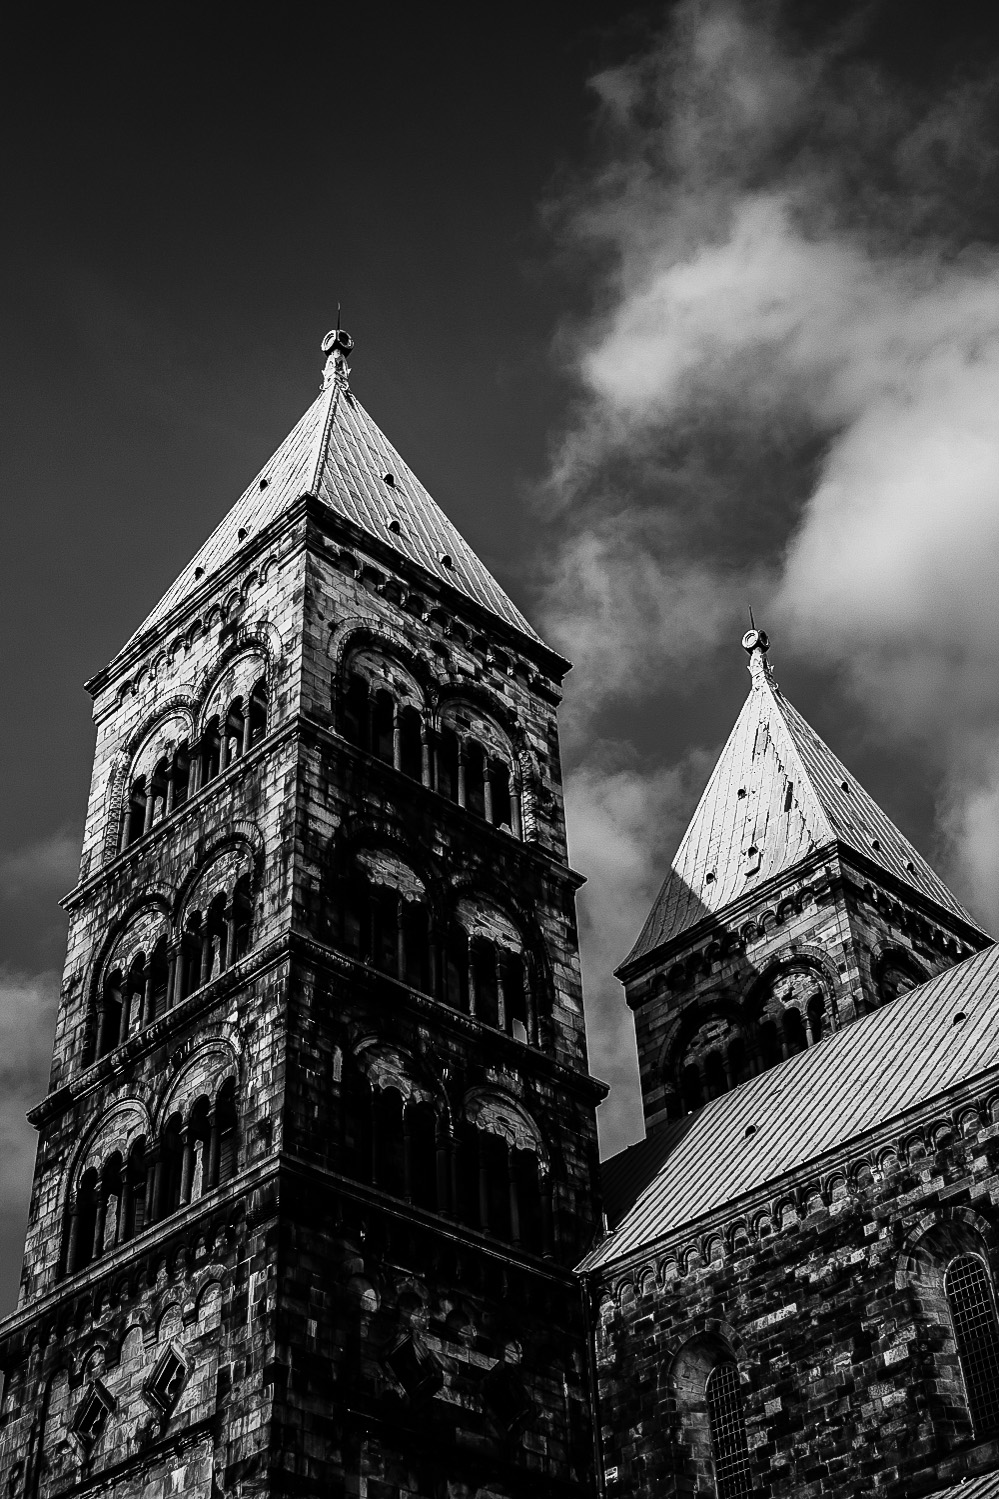 lund-cathedral-2-of-6_10644668454_o.jpg